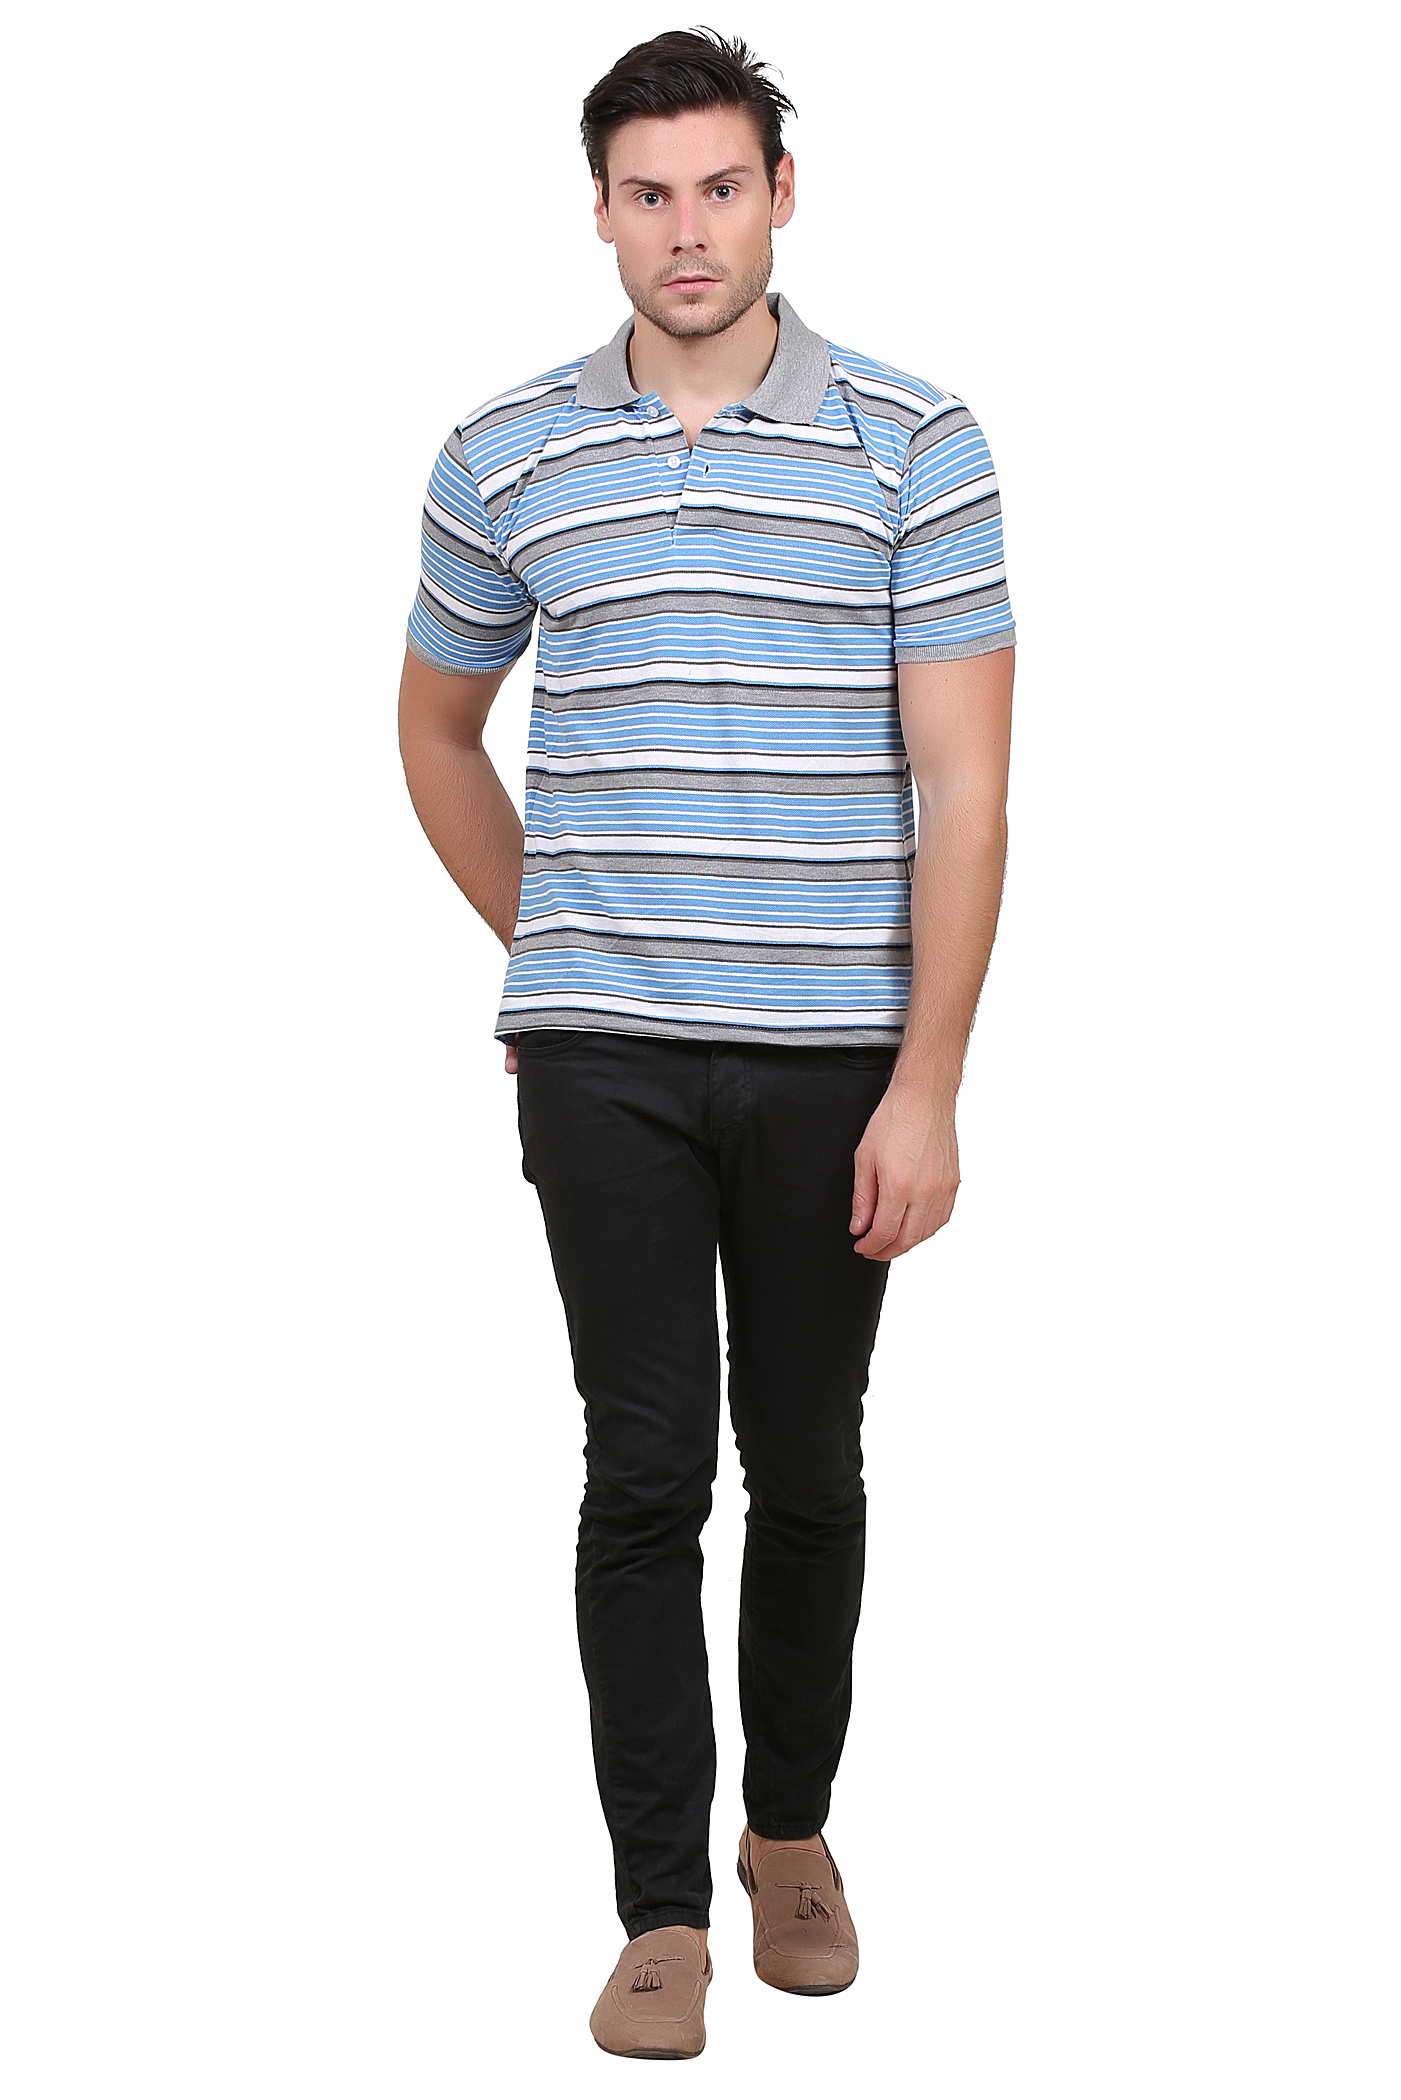 Striped Men Polo Neck Light Blue and Grey T Shirt